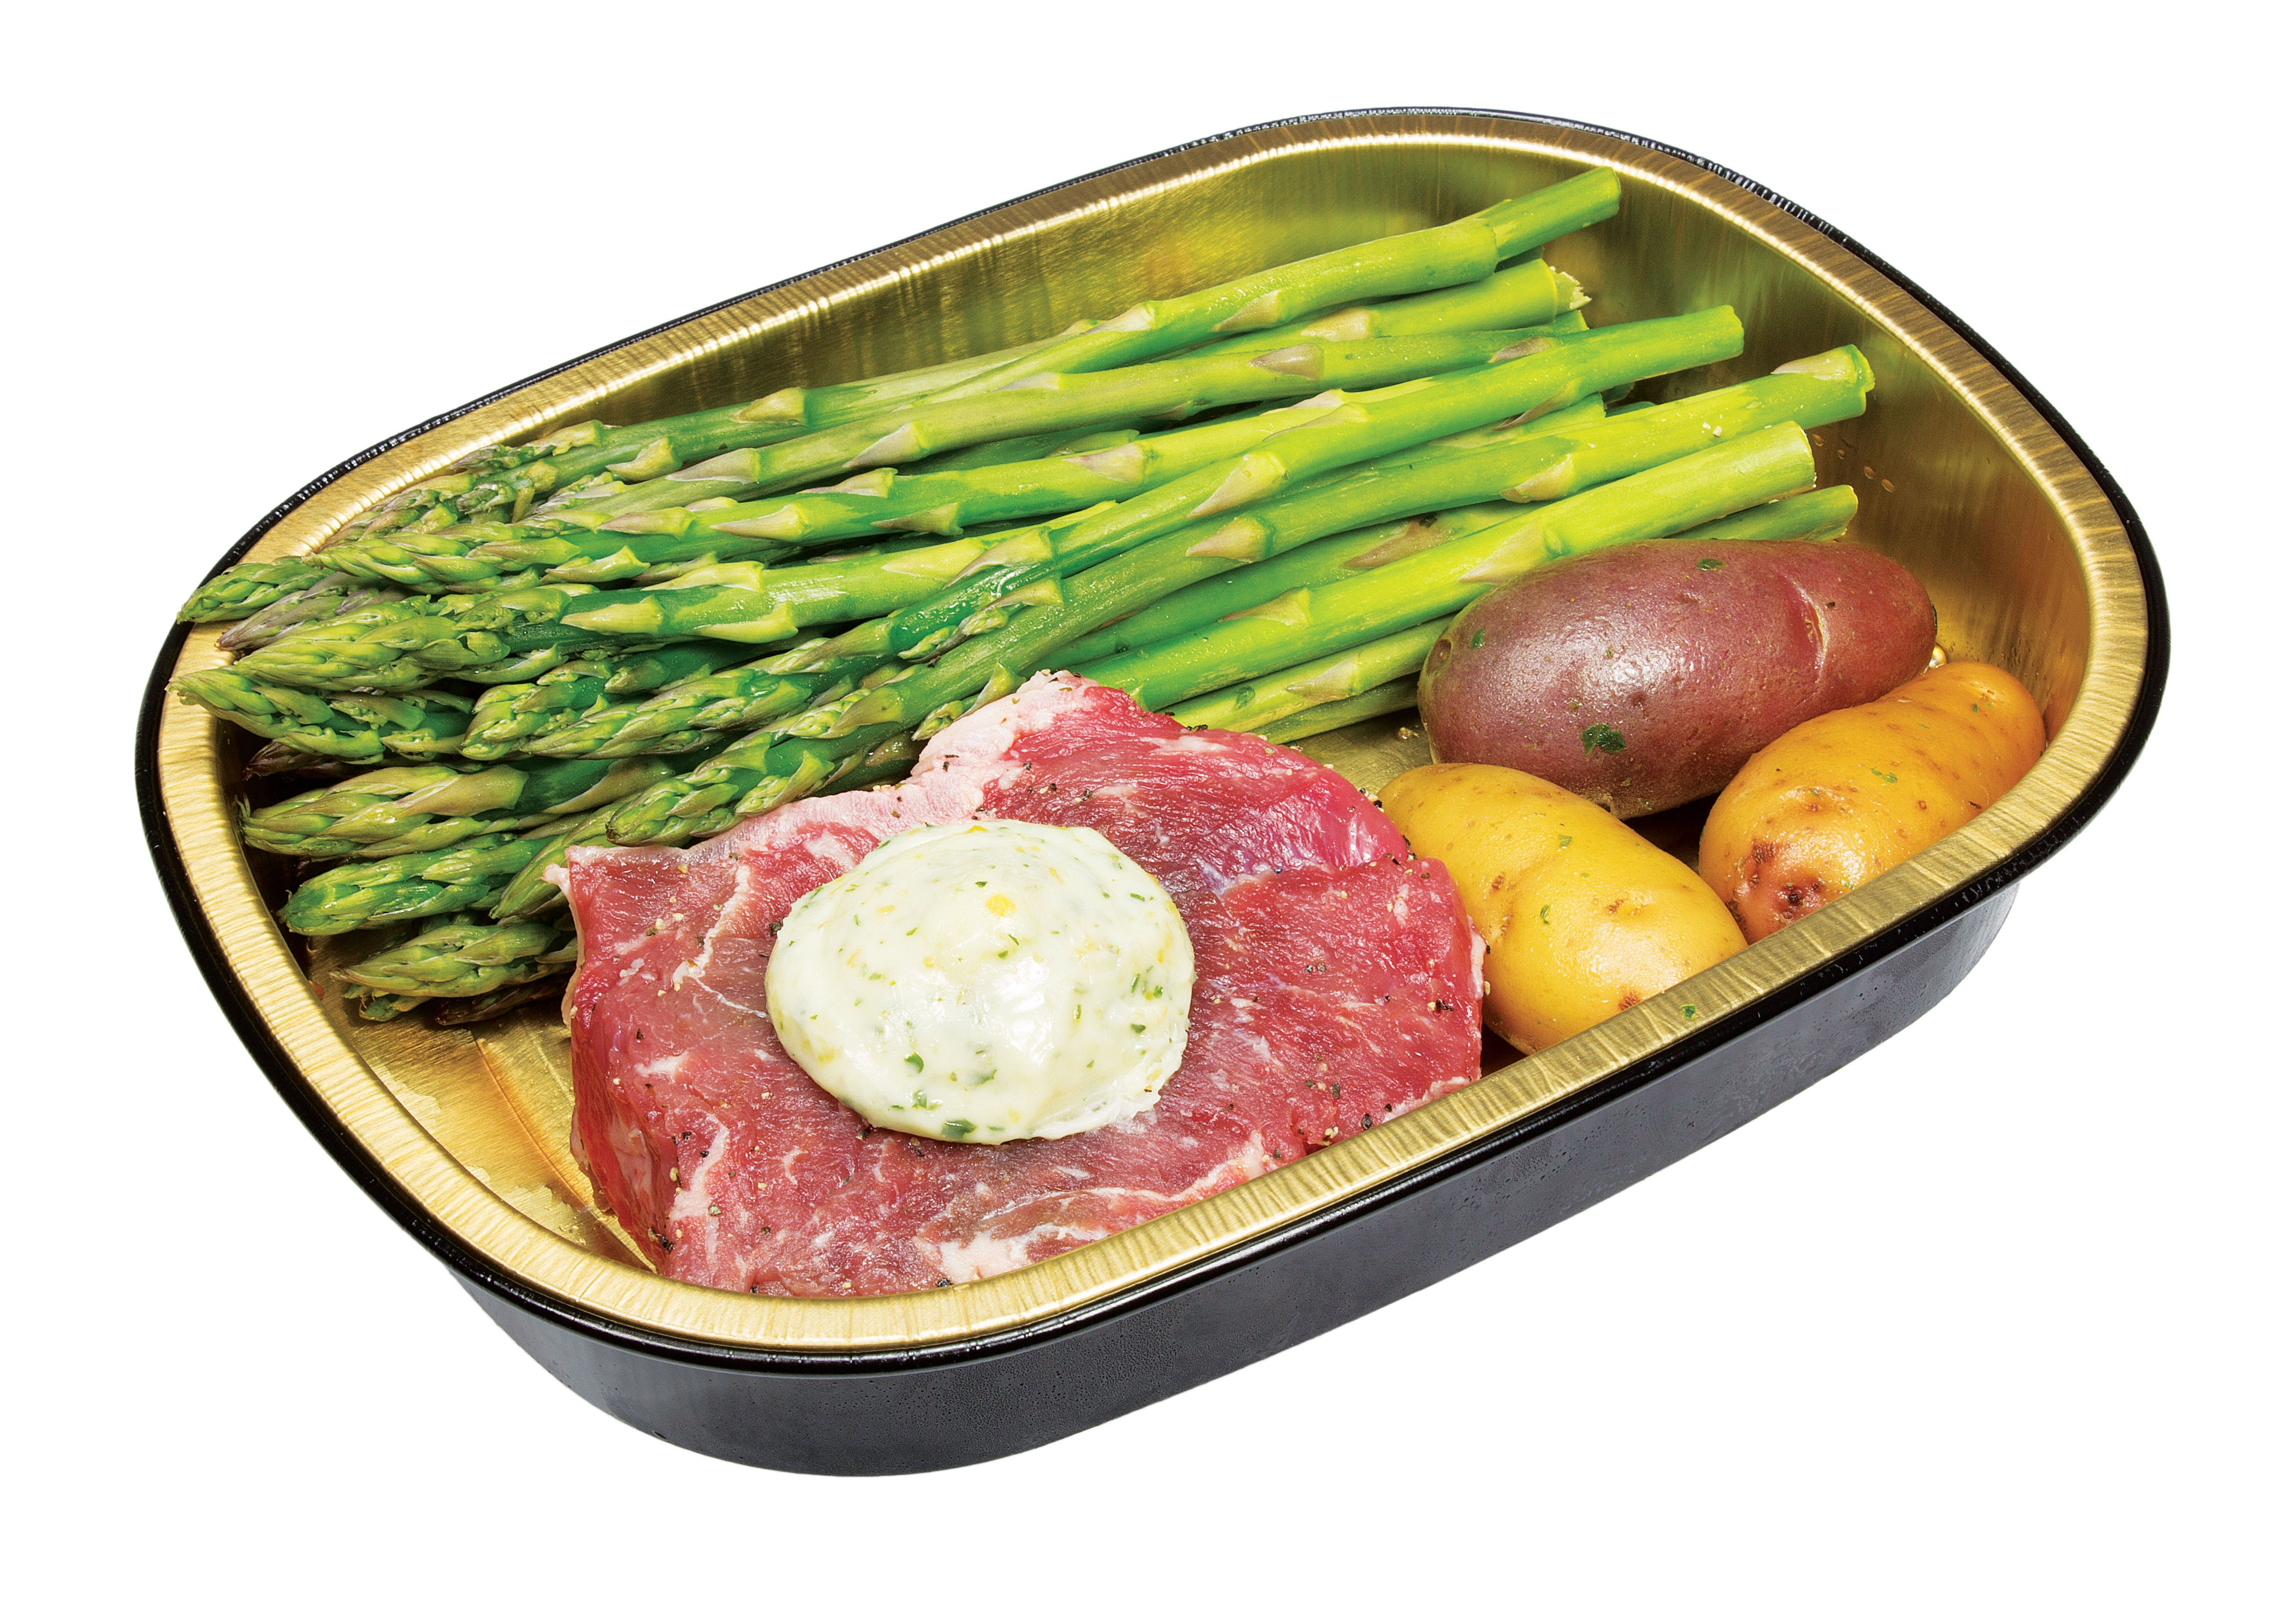 heb meal simple garlic butter choice strip steak with asparagus and potatoes shop meal simple at heb